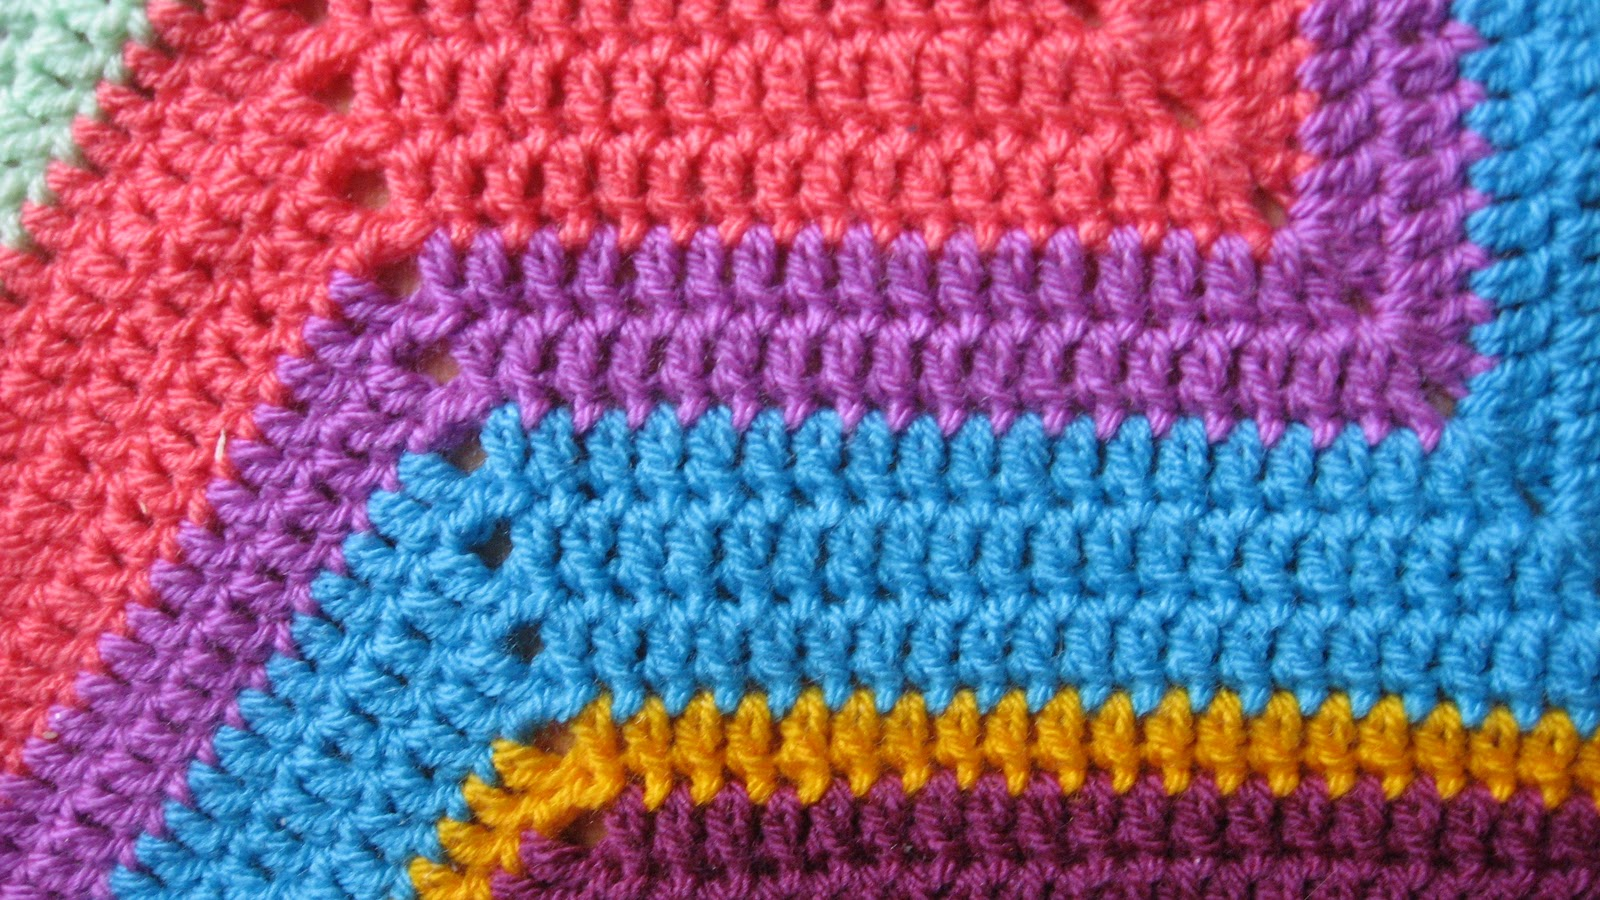 Crochet Projects Scrappy Round Ripple